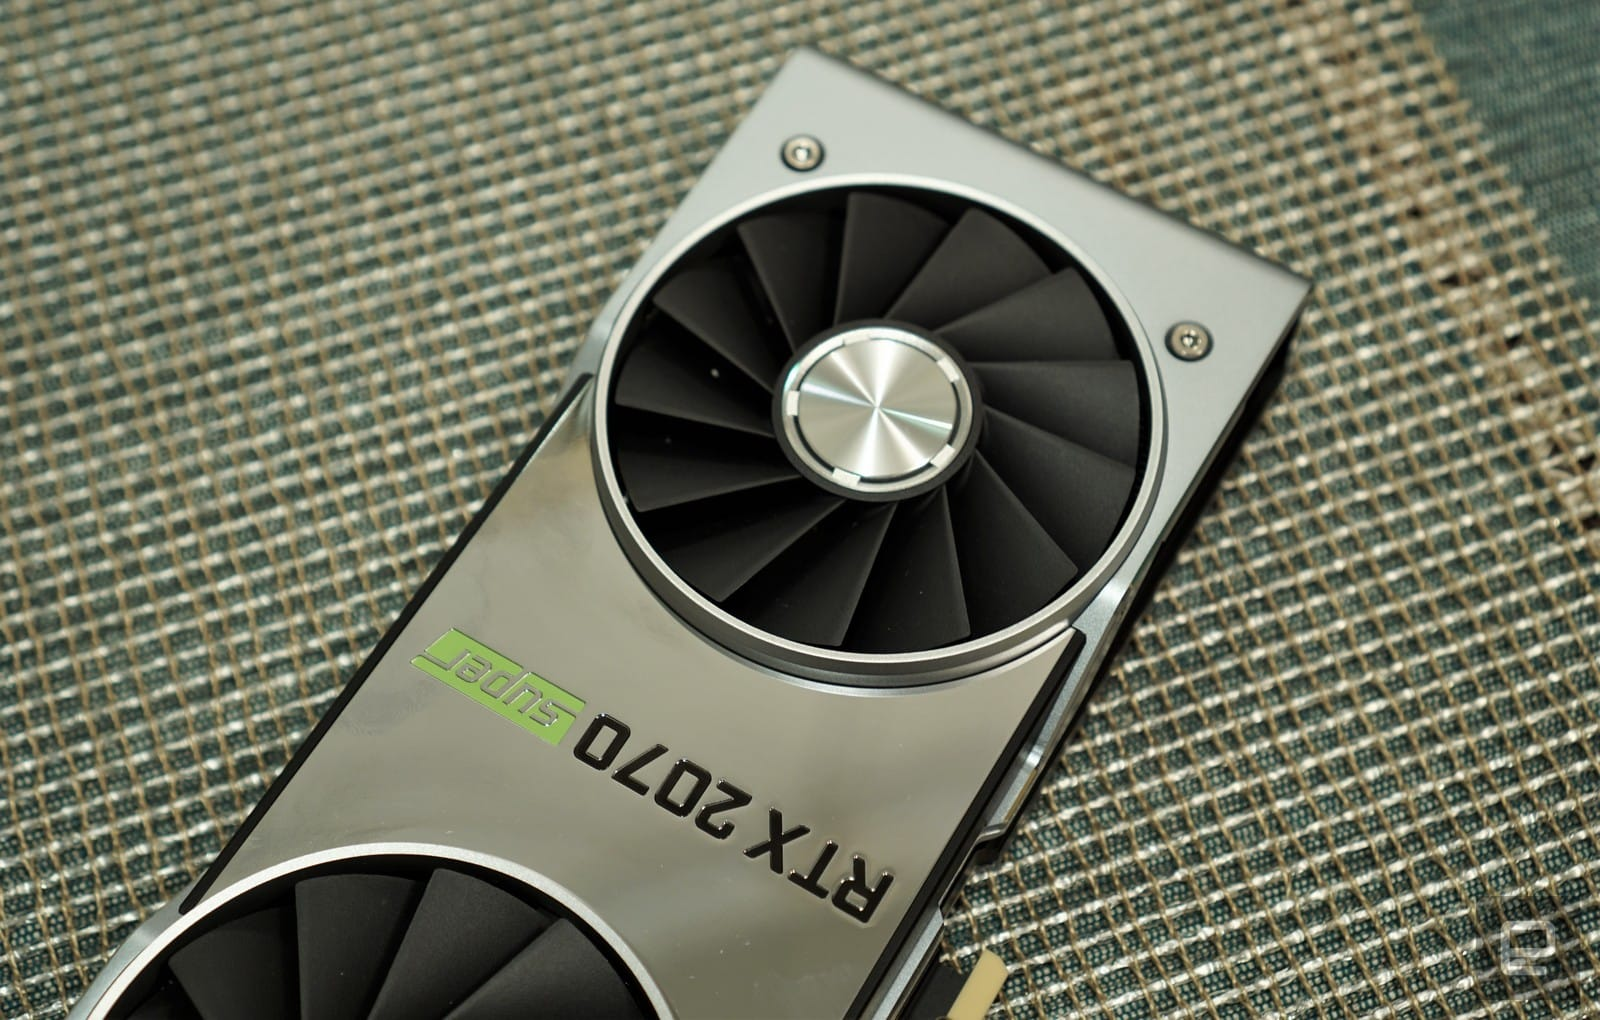 NVIDIA RTX 2060 Super and 2070 Super {focus_keyword} NVIDIA RTX 2060 Super and 2070 Super review dims crop 1600 2C1020 2C0 2C0 quality 85 format jpg resize 1600 2C1020 image uri https 3A 2F 2Fs